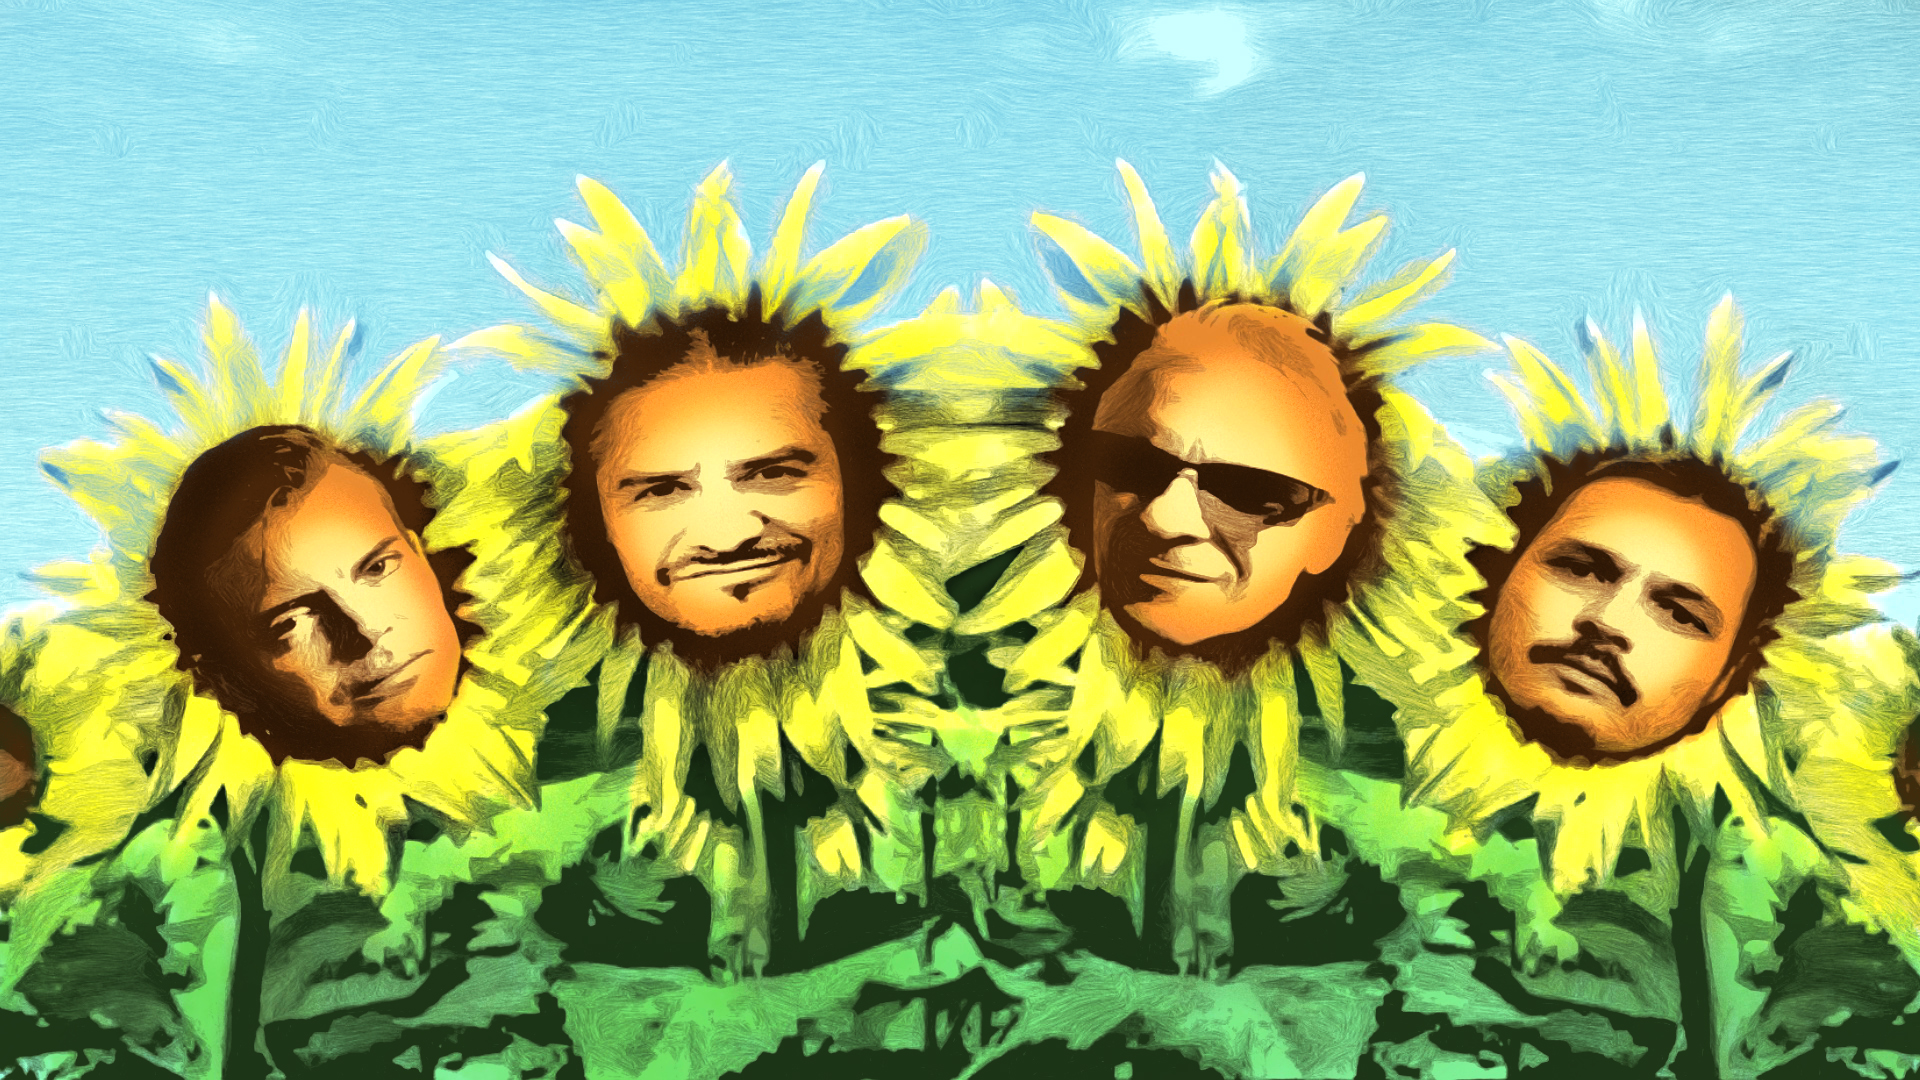 tomahawk-sunflowers-color-brighter-credit-eric-livingston-1